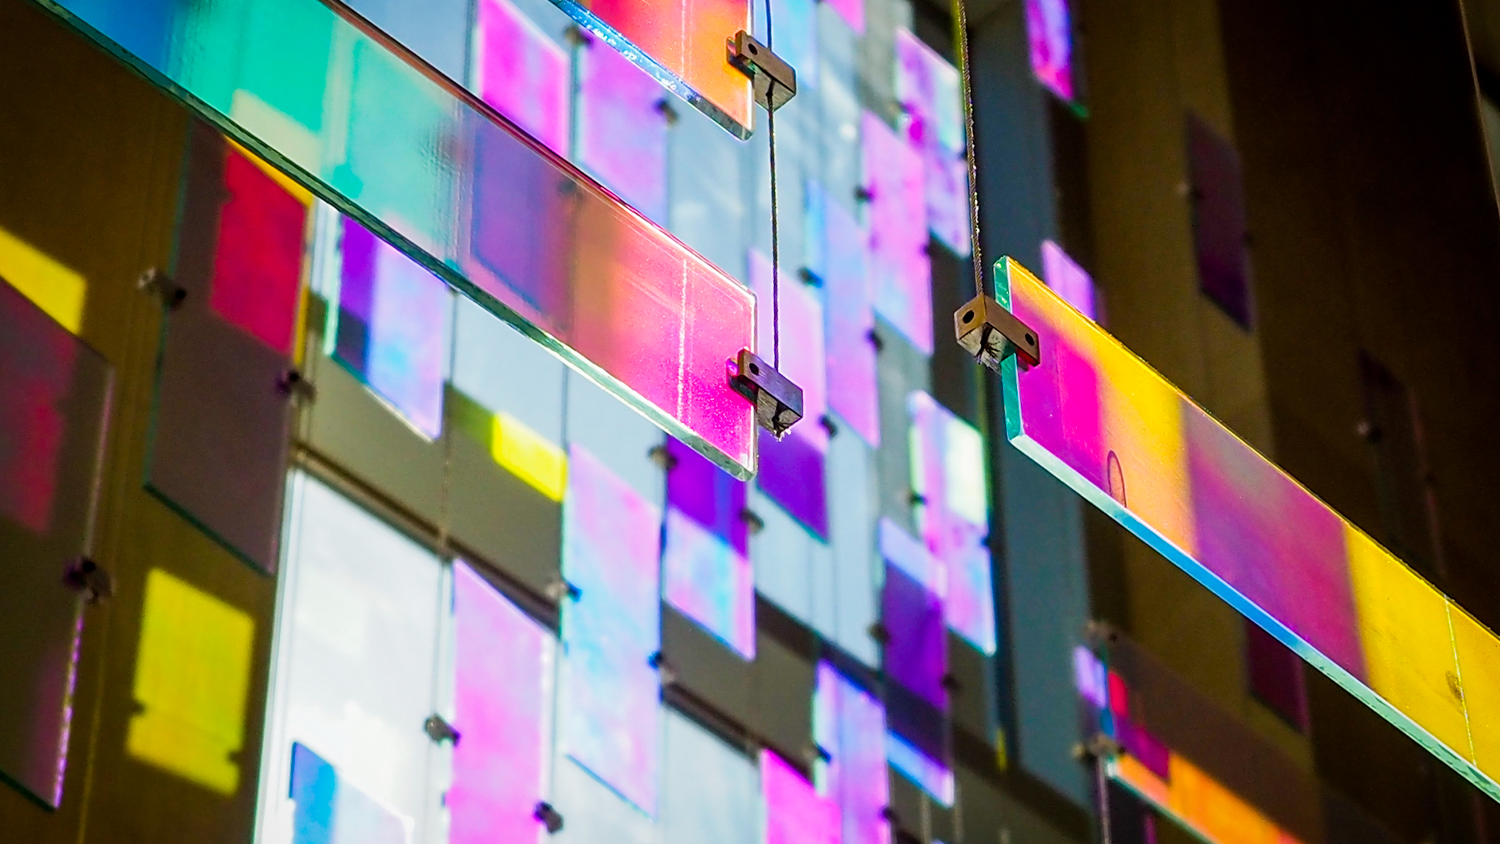 Light streams through stained glass blocks in the DH Hill